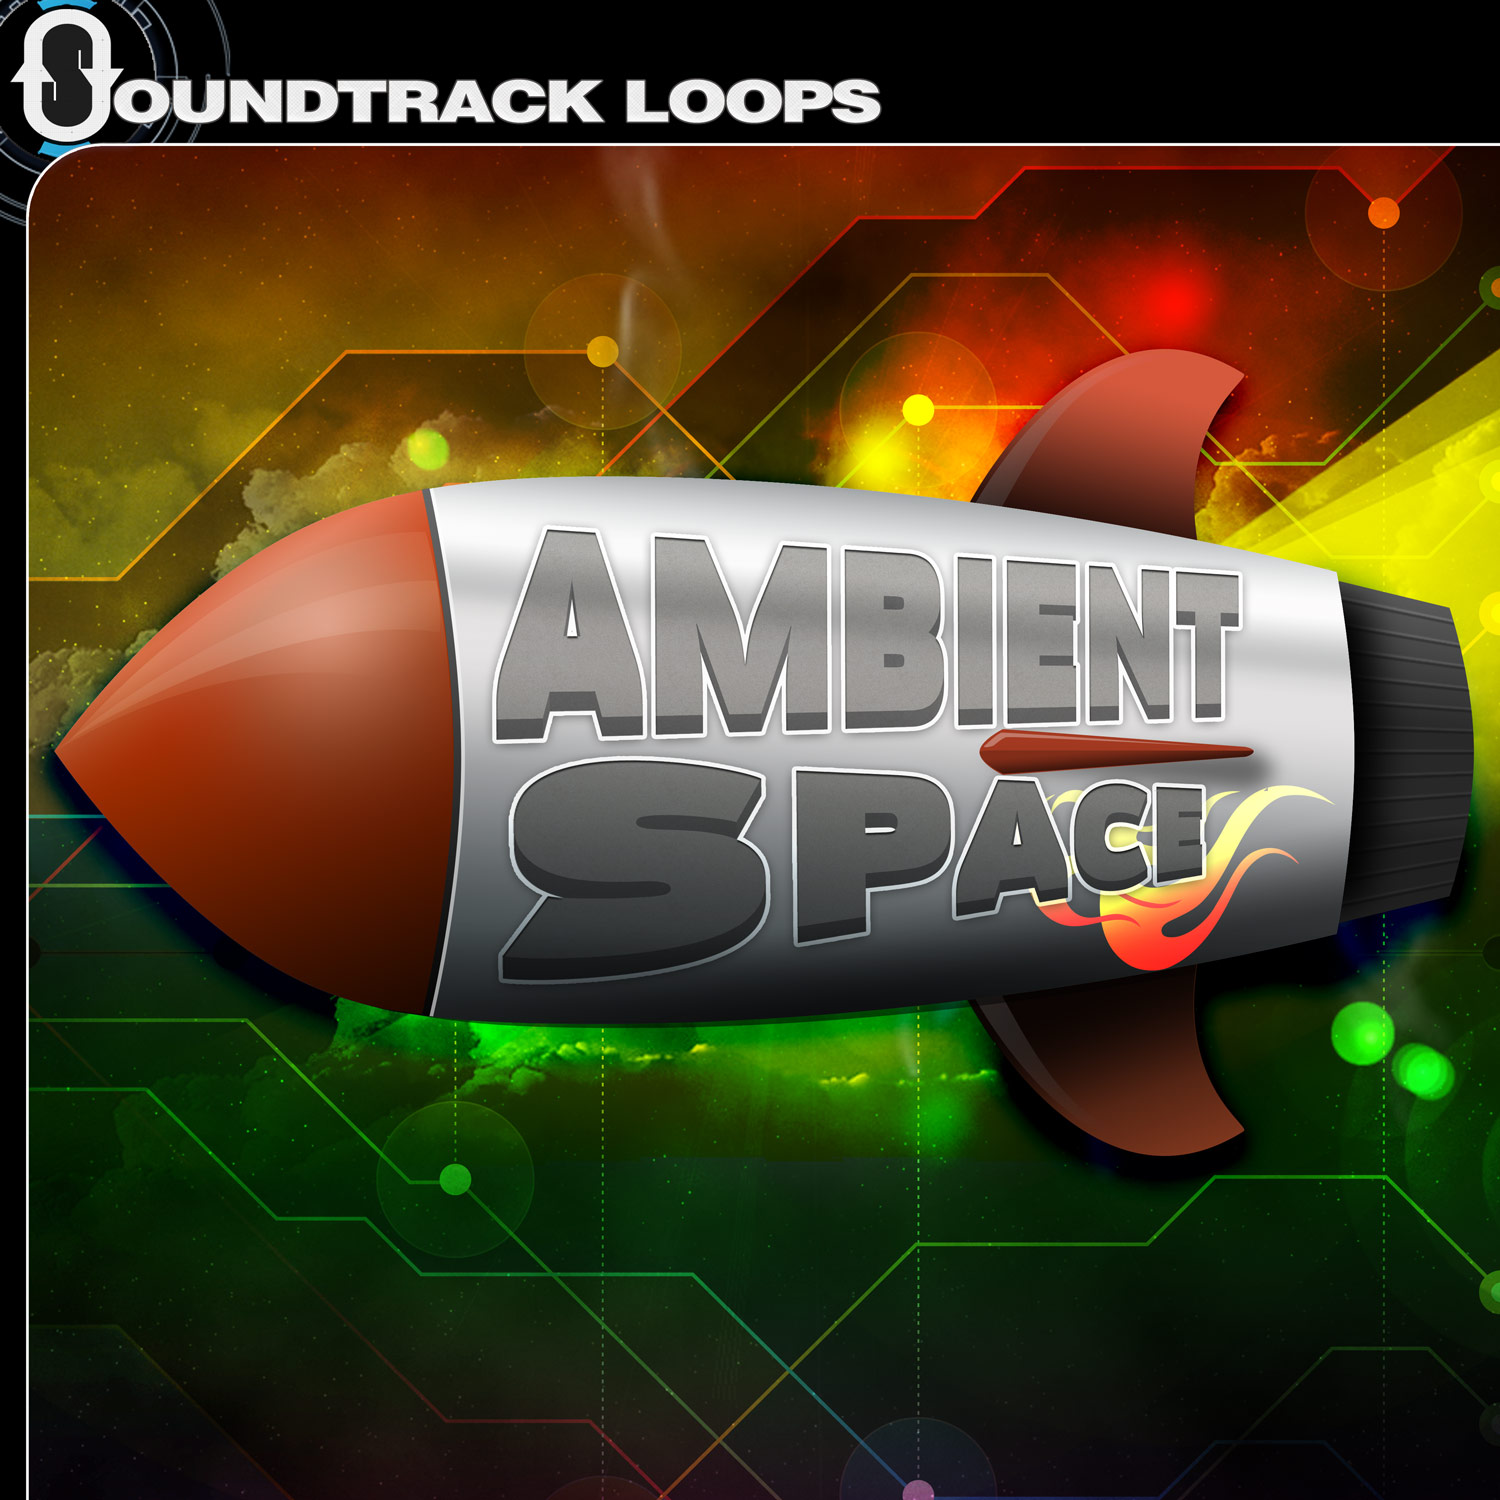 Ambient Spacey loops